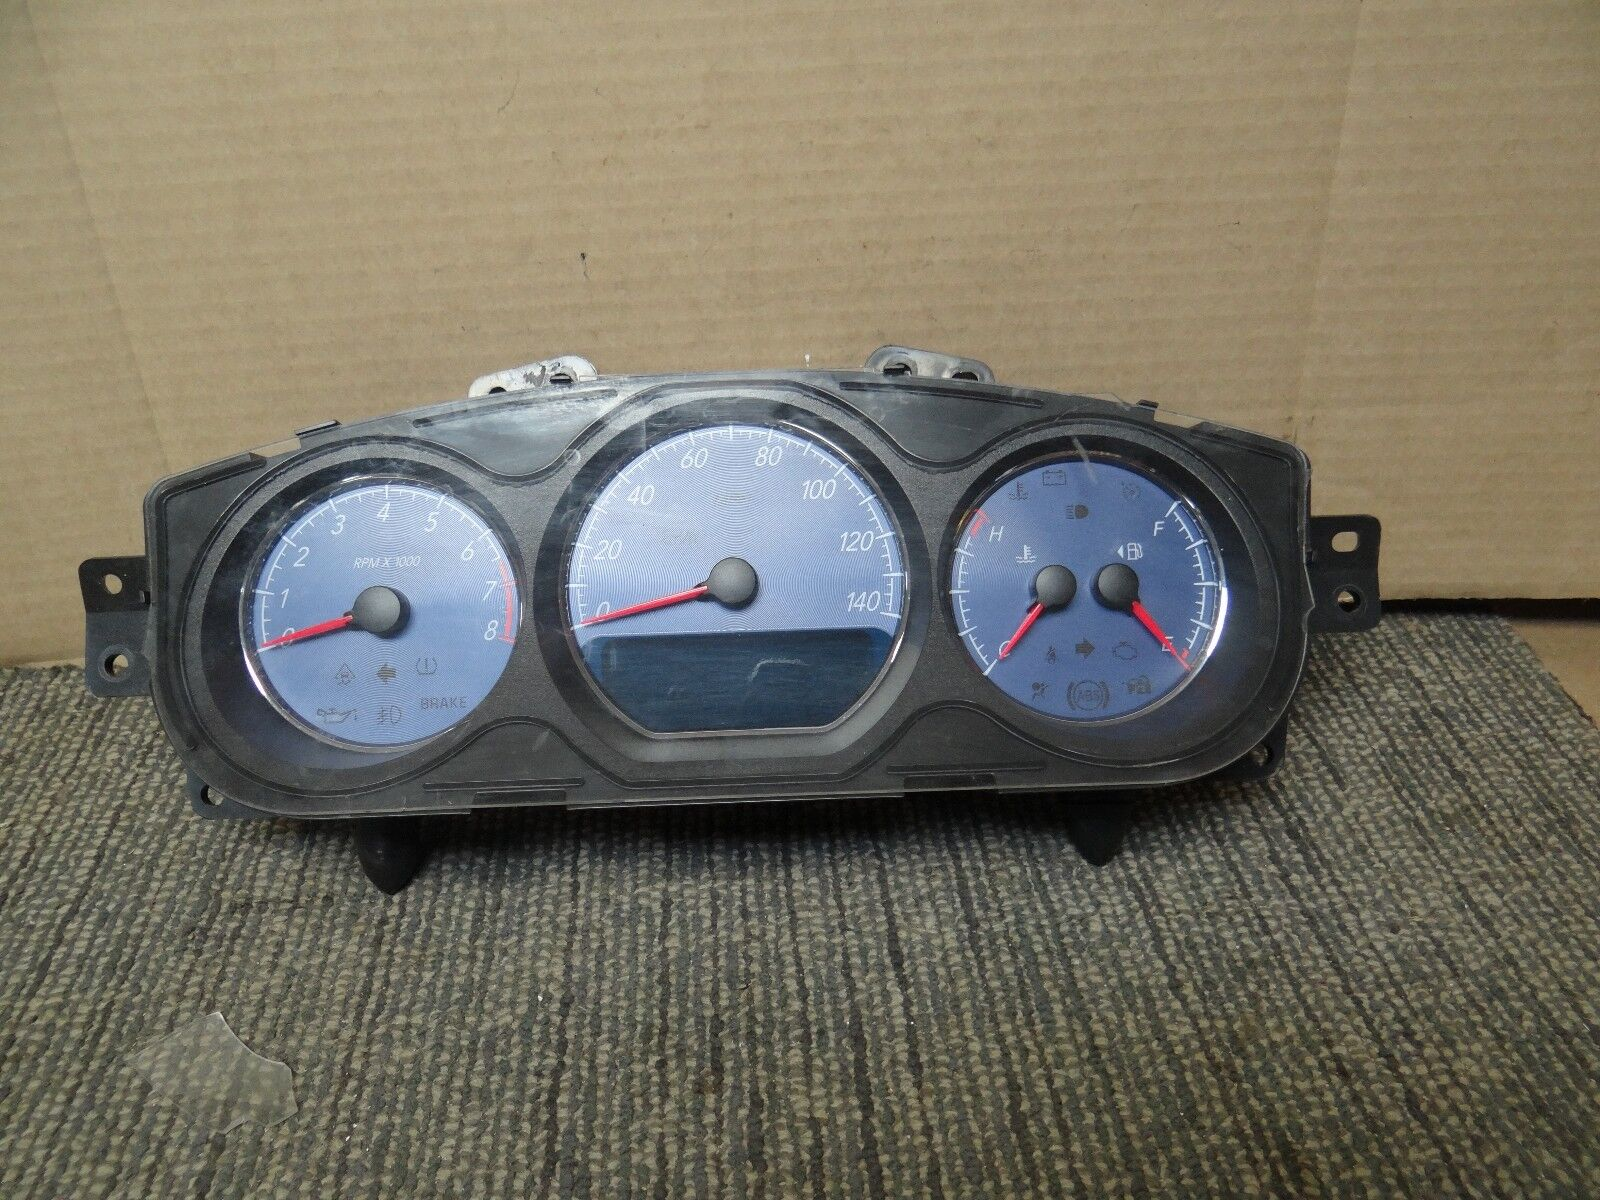 Used Buick Lucerne Engine Computers For Sale 06 Fuse Box Cl1776 2006 Speedometer Instrument Cluster Oem 100k 15853817